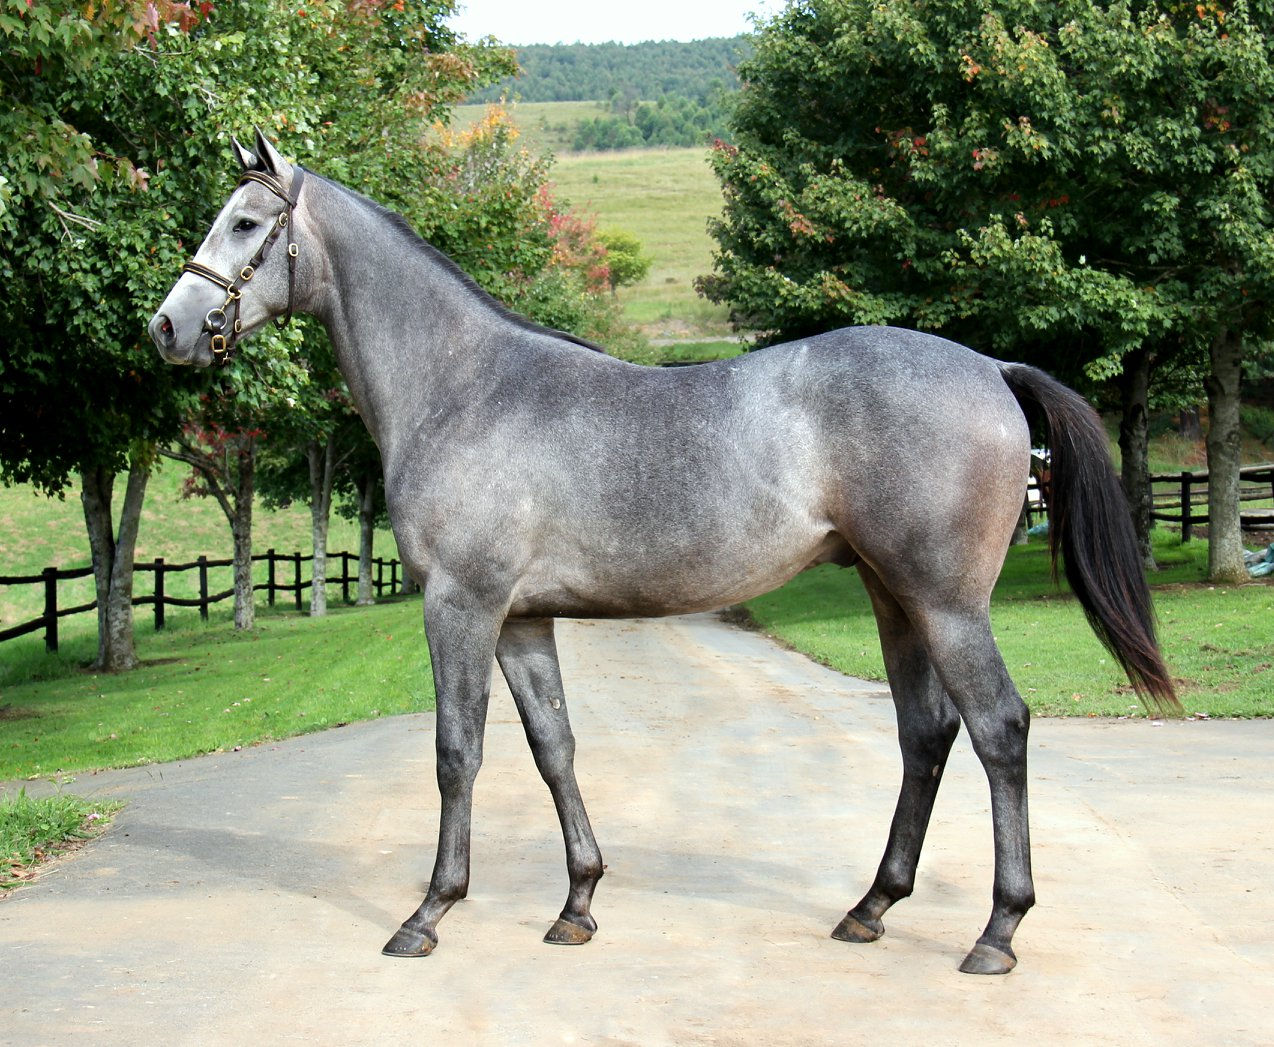 INDY GO (LOT 158) Captain Of All x Go Indigo by Indigo Magic. First foal of Gr2 winning dam.